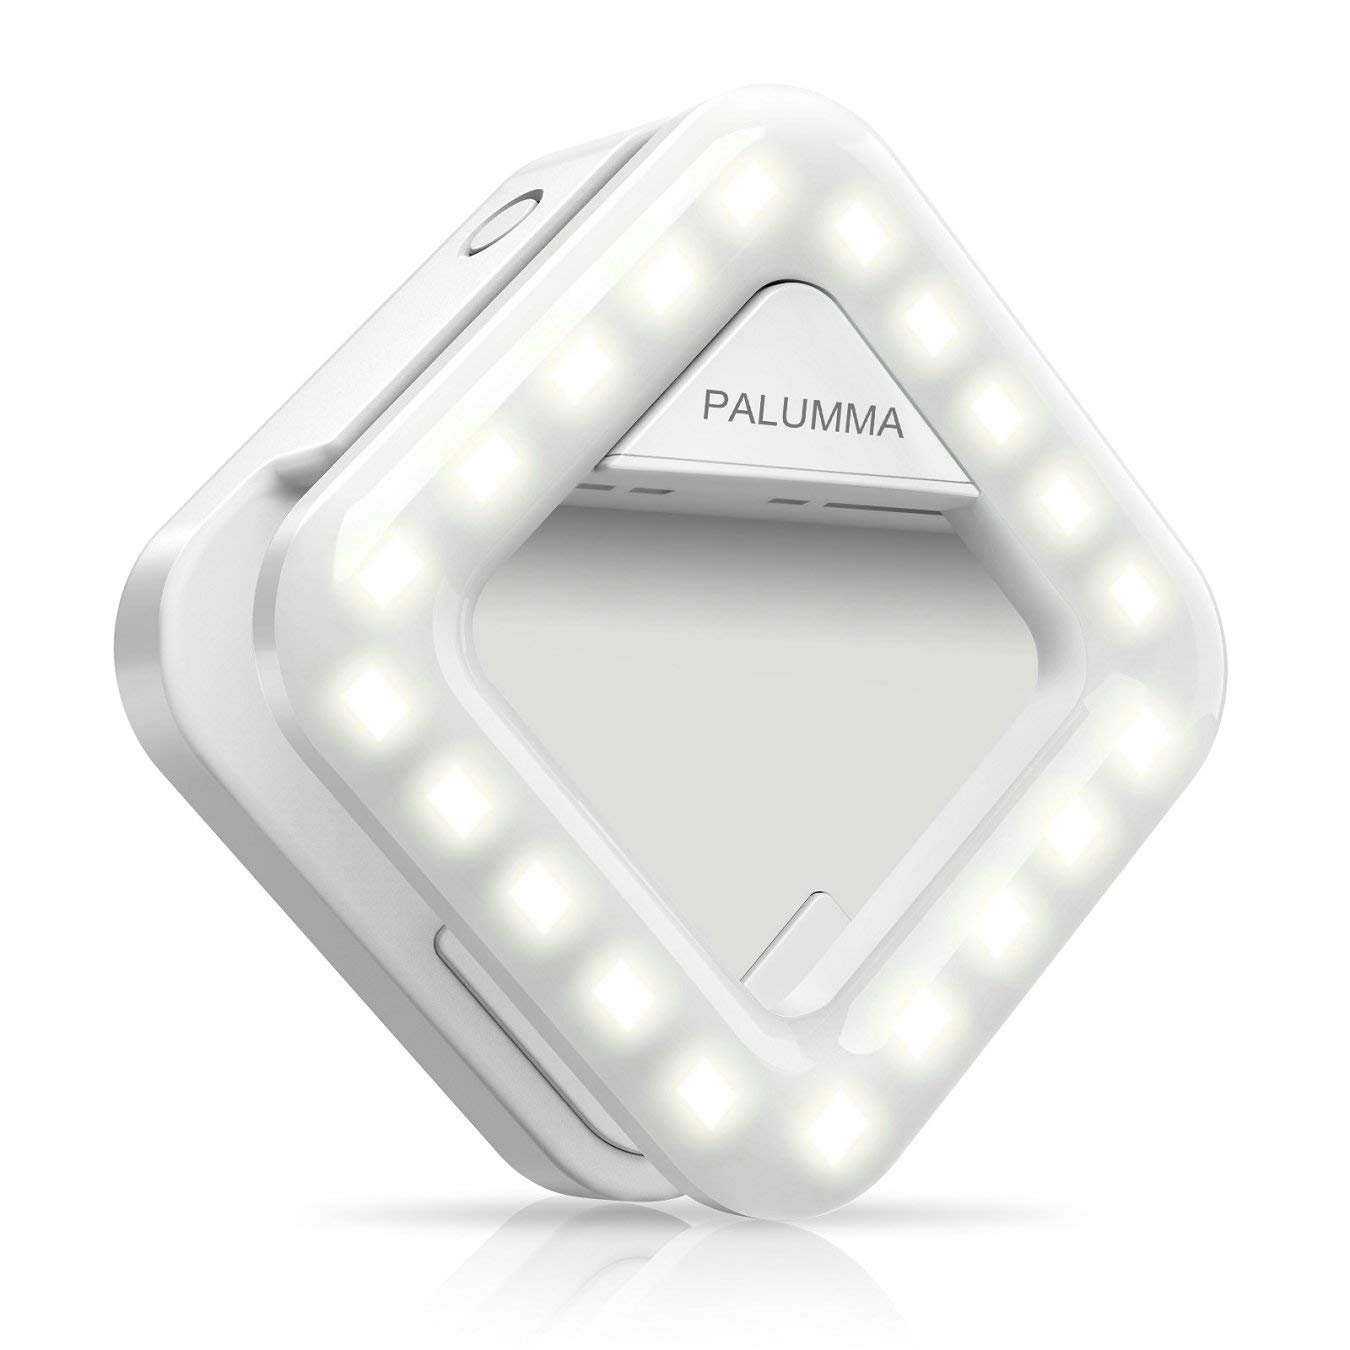 Palumma LED Selfie Light, Clip On Portable Selfie Ring with 9-Level Adjustable Brightness 32 LED Bulbs, Continue to Function As a Handbag Light, Build-in Rechargeable Battery B10Y